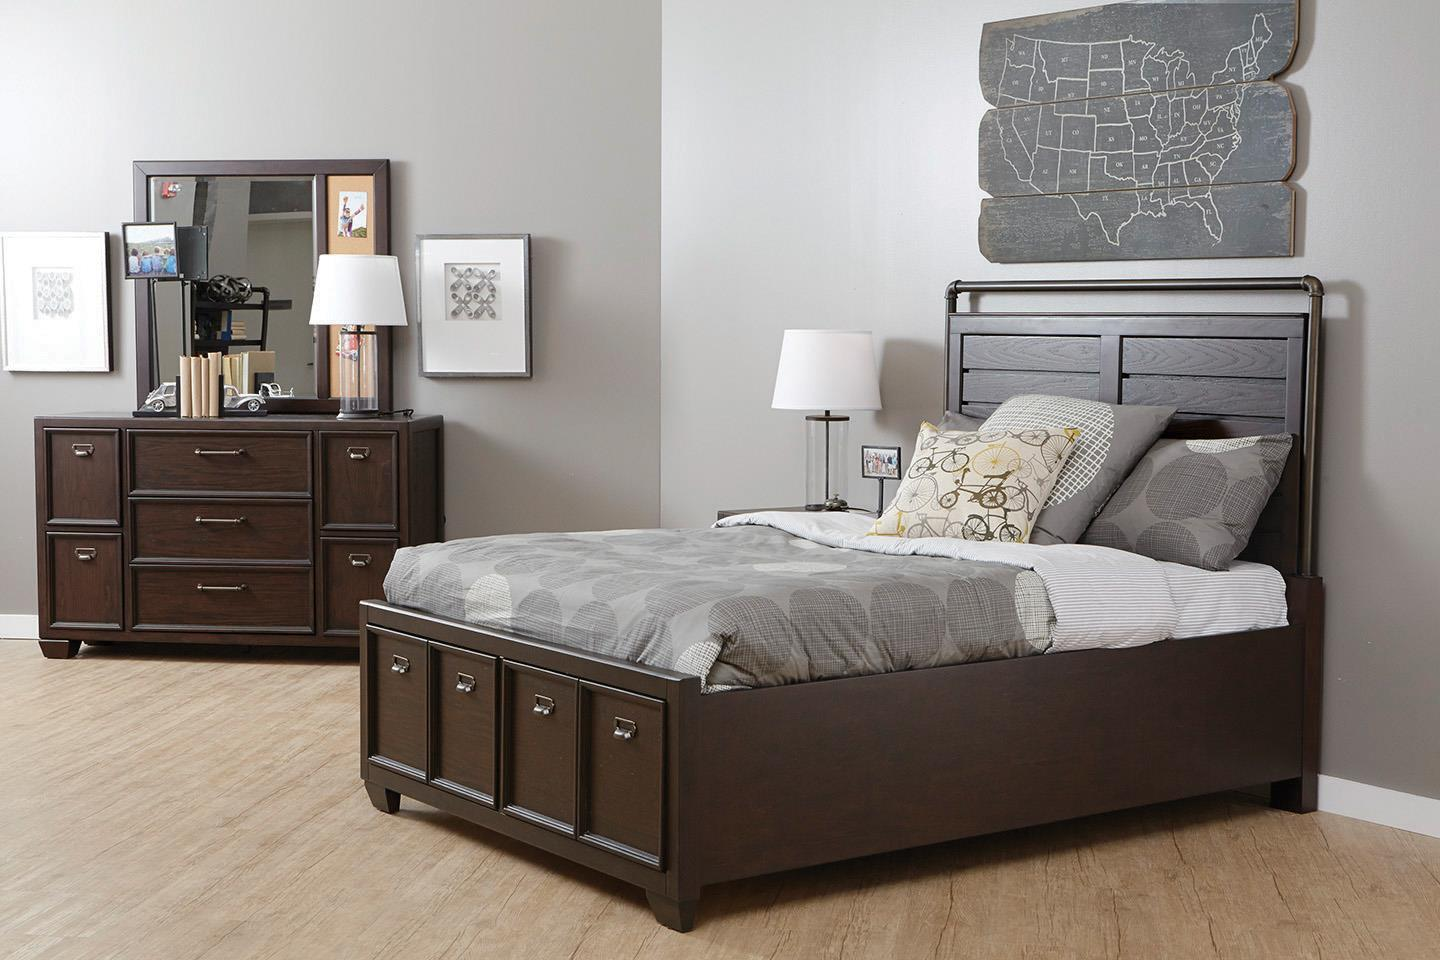 piece with furniture bright samuel set sweetheart white lawrence in twin footboard upholstered bedroom storage